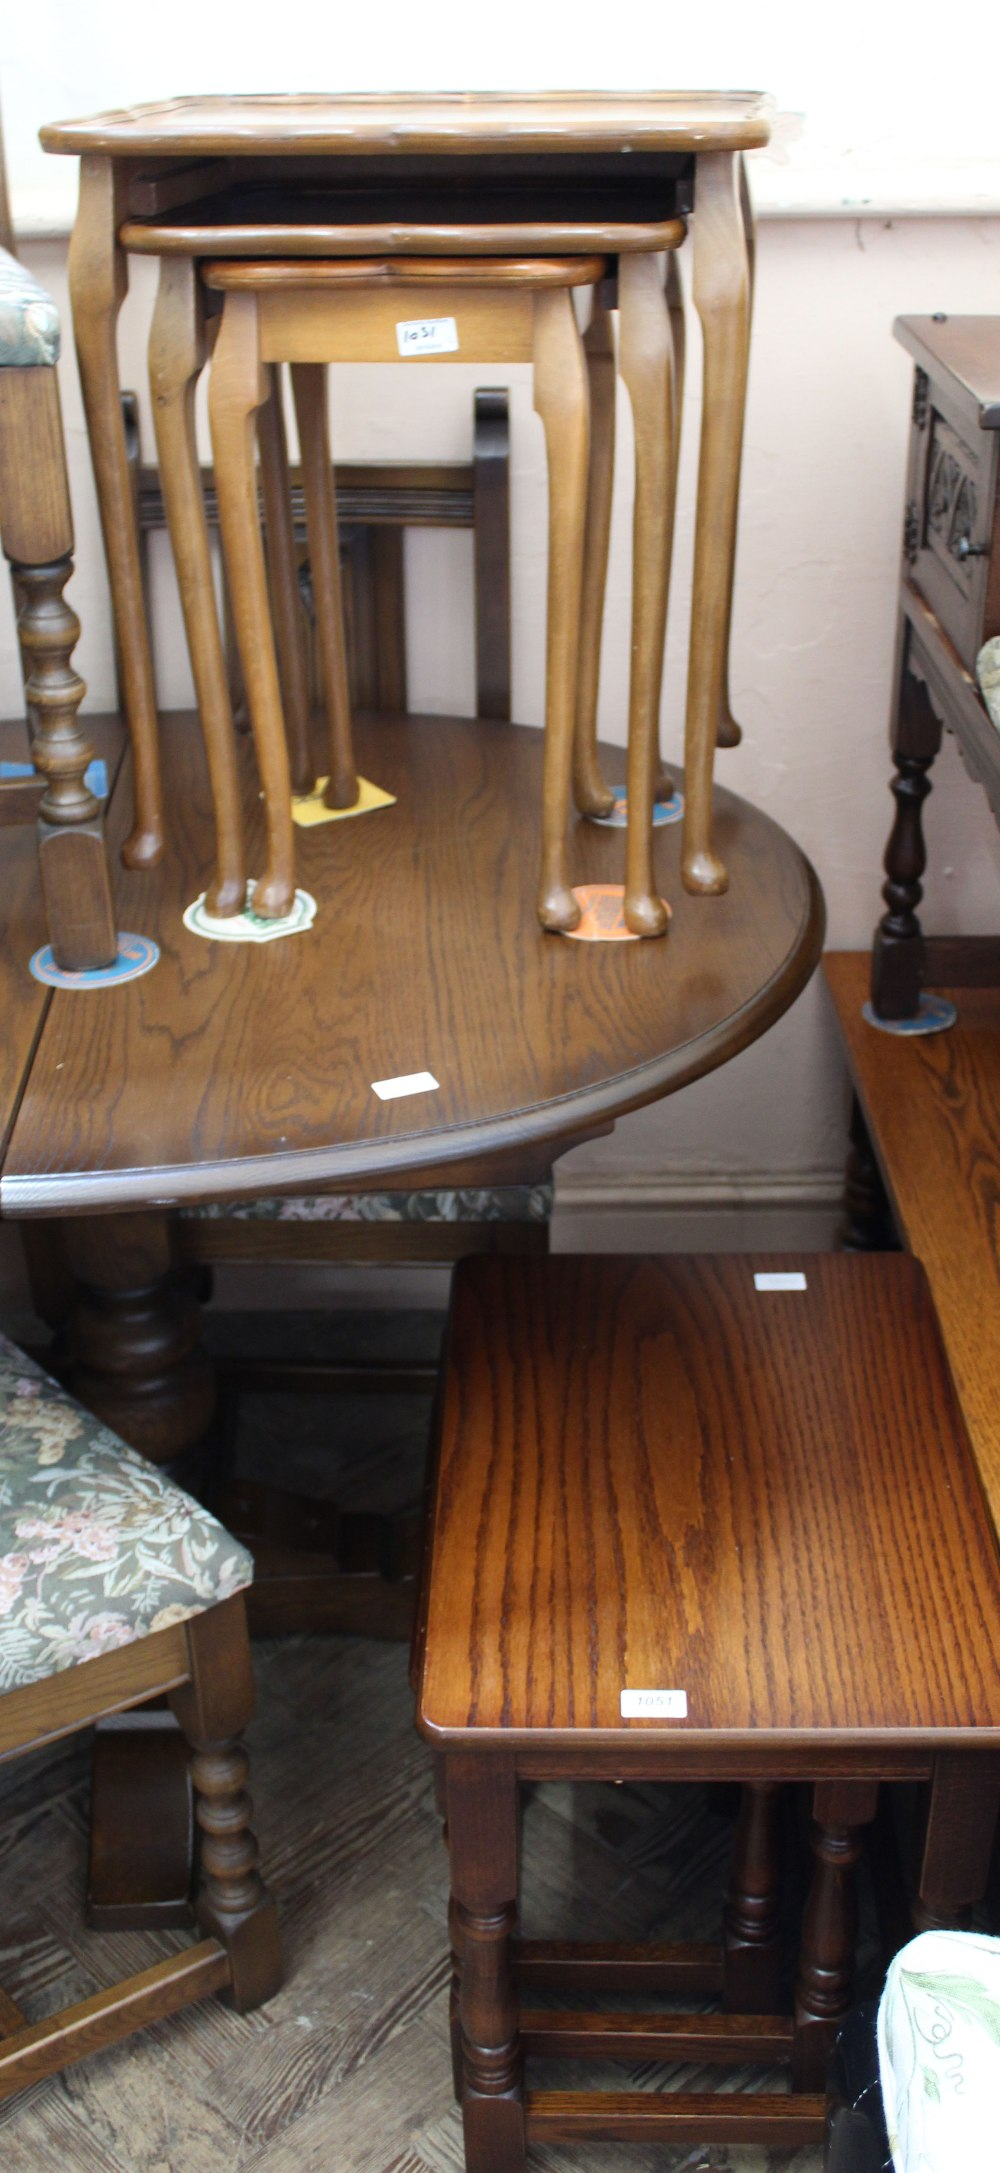 Lot 1051 - An Old Charm nest of three oak tables and one other nest of tables